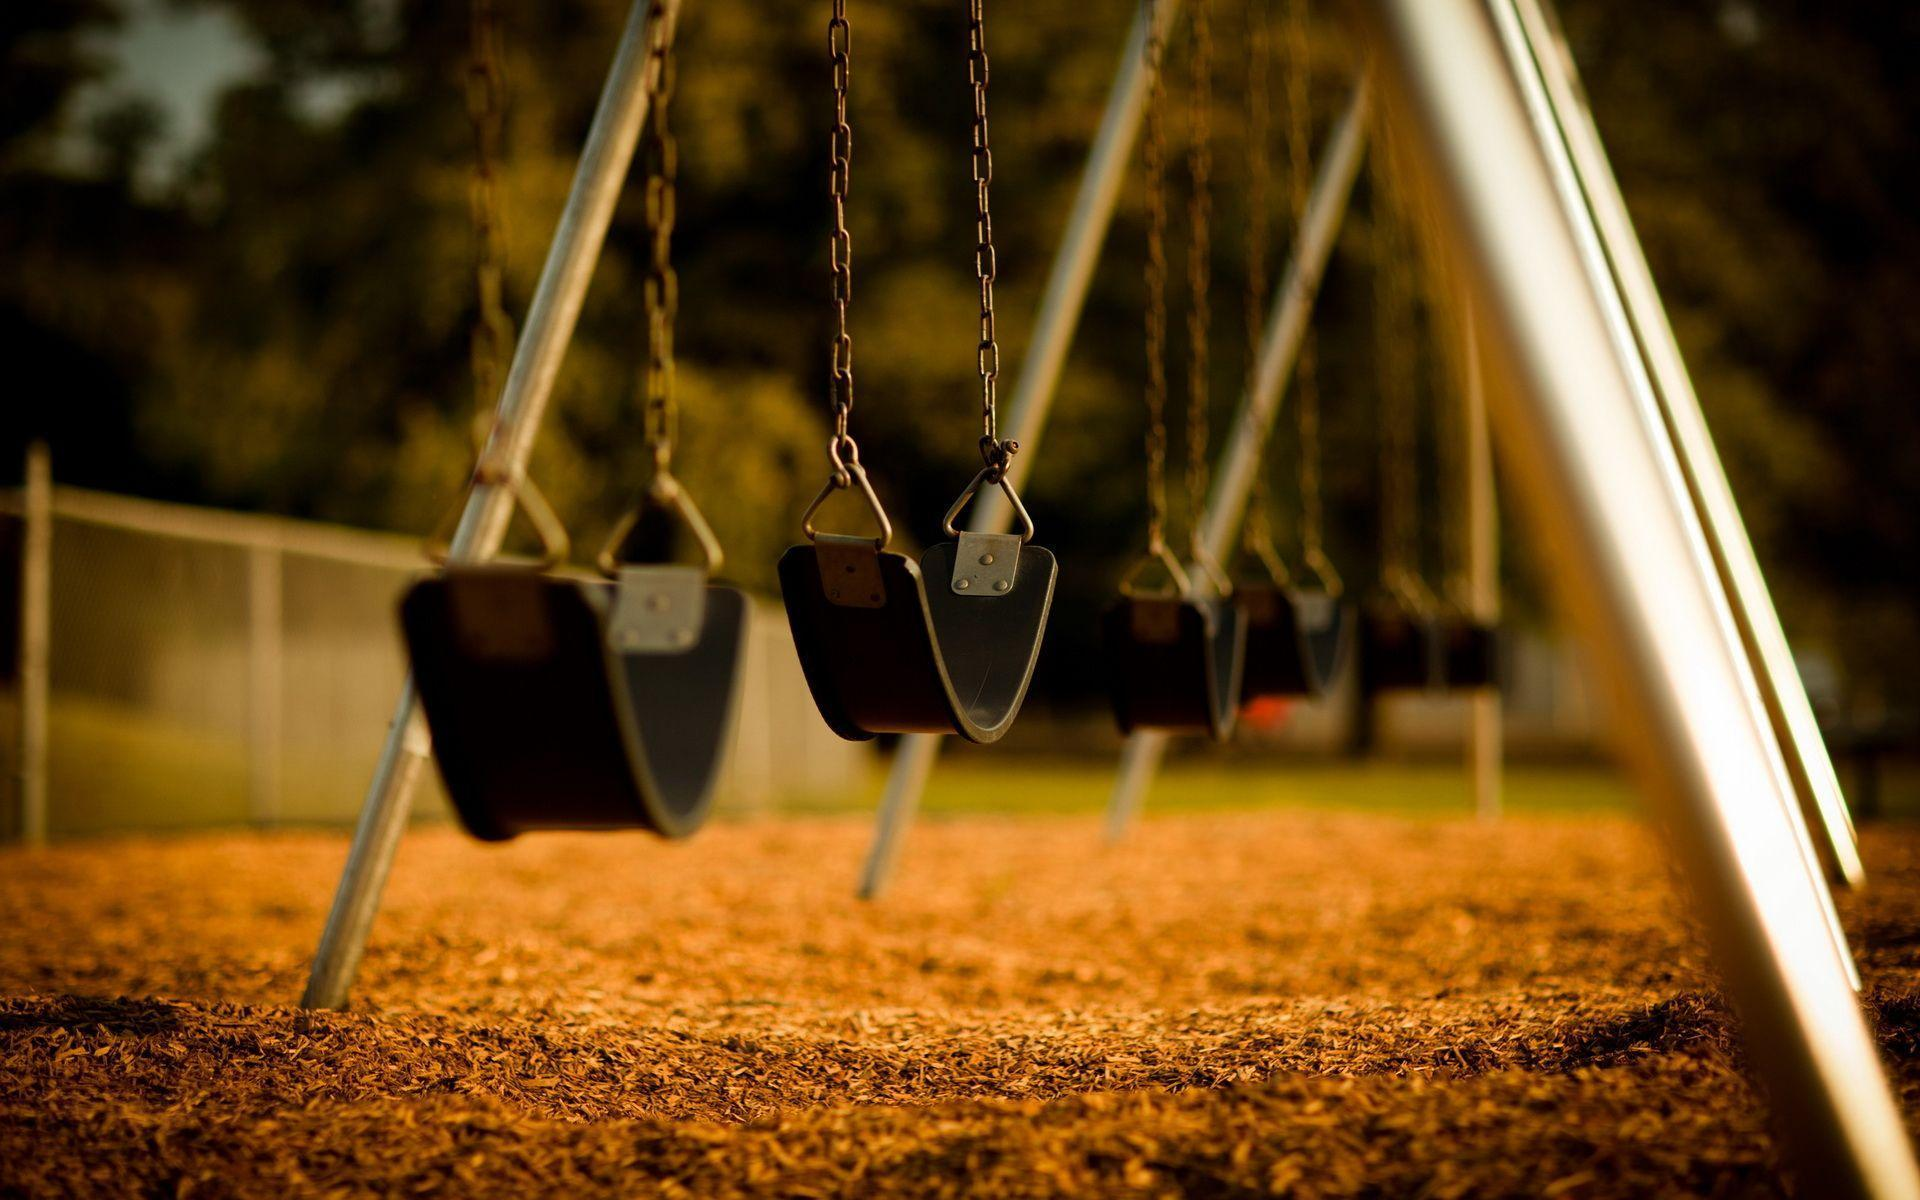 HD Swing Wallpapers and Photos | HD Photography Wallpapers